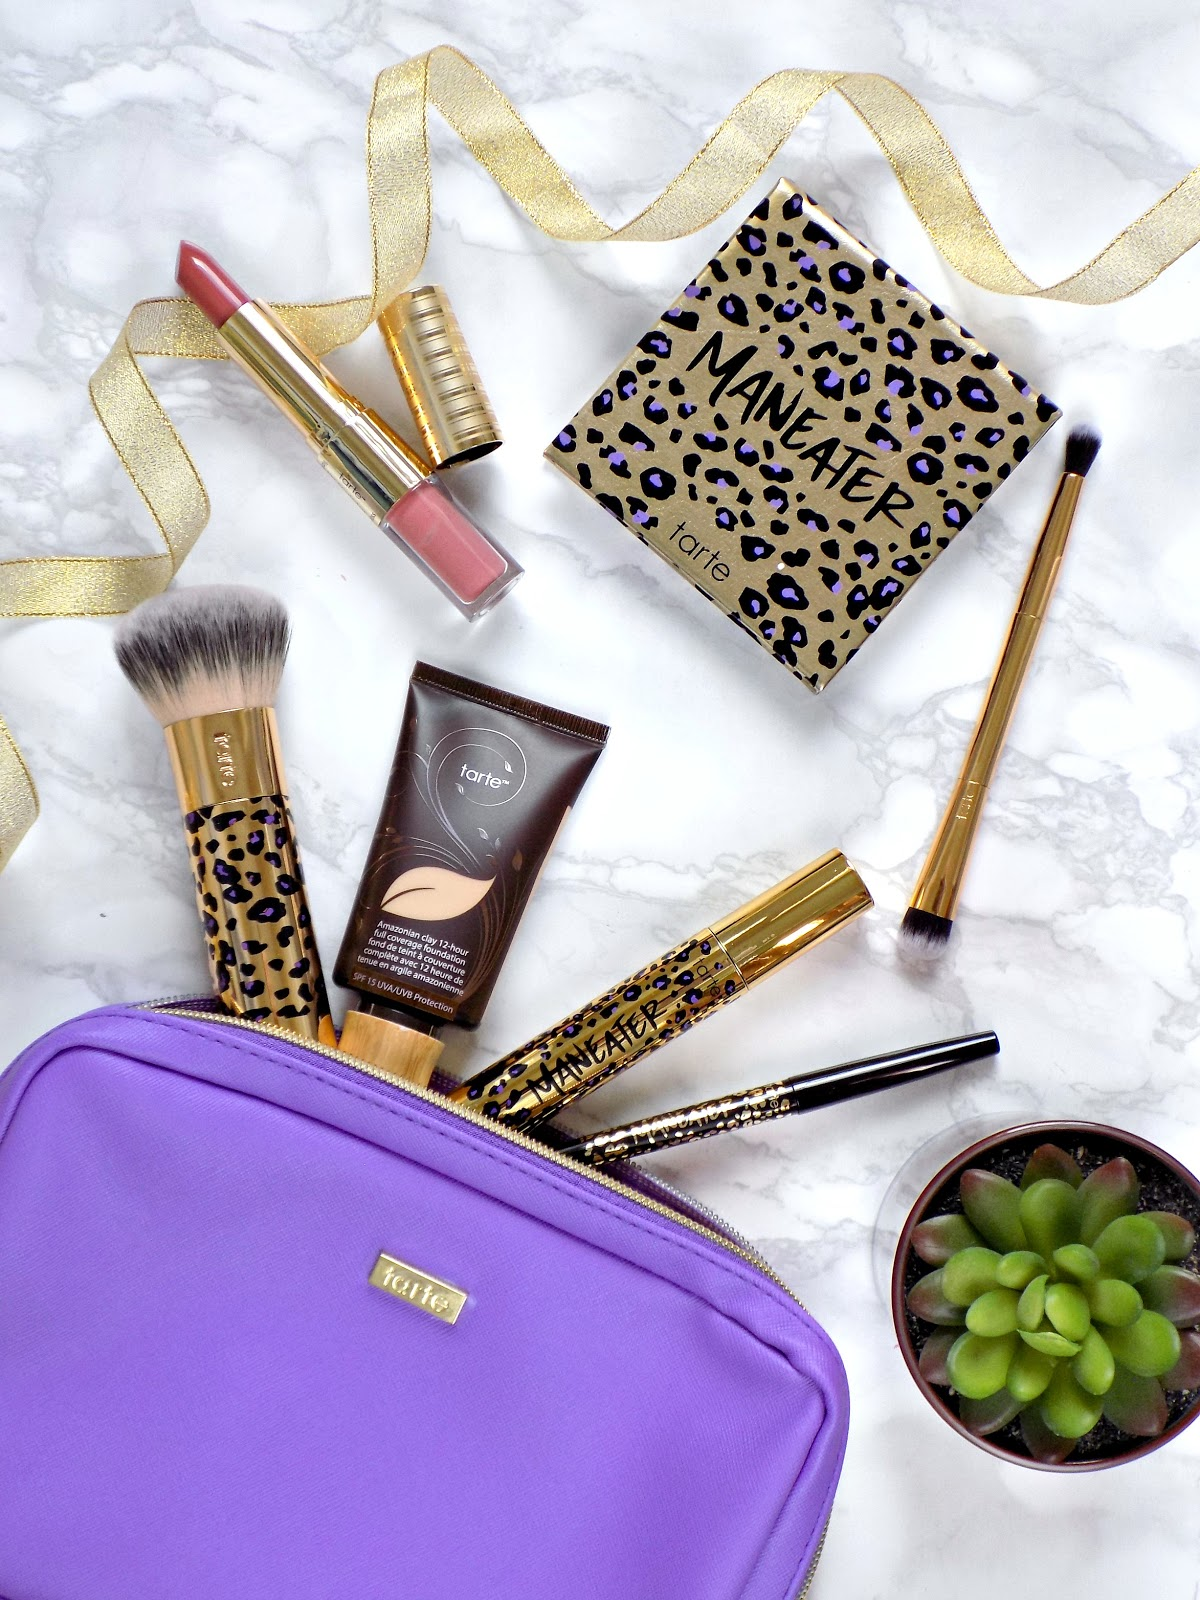 Tarte Maneater Makeup Collection from QVC